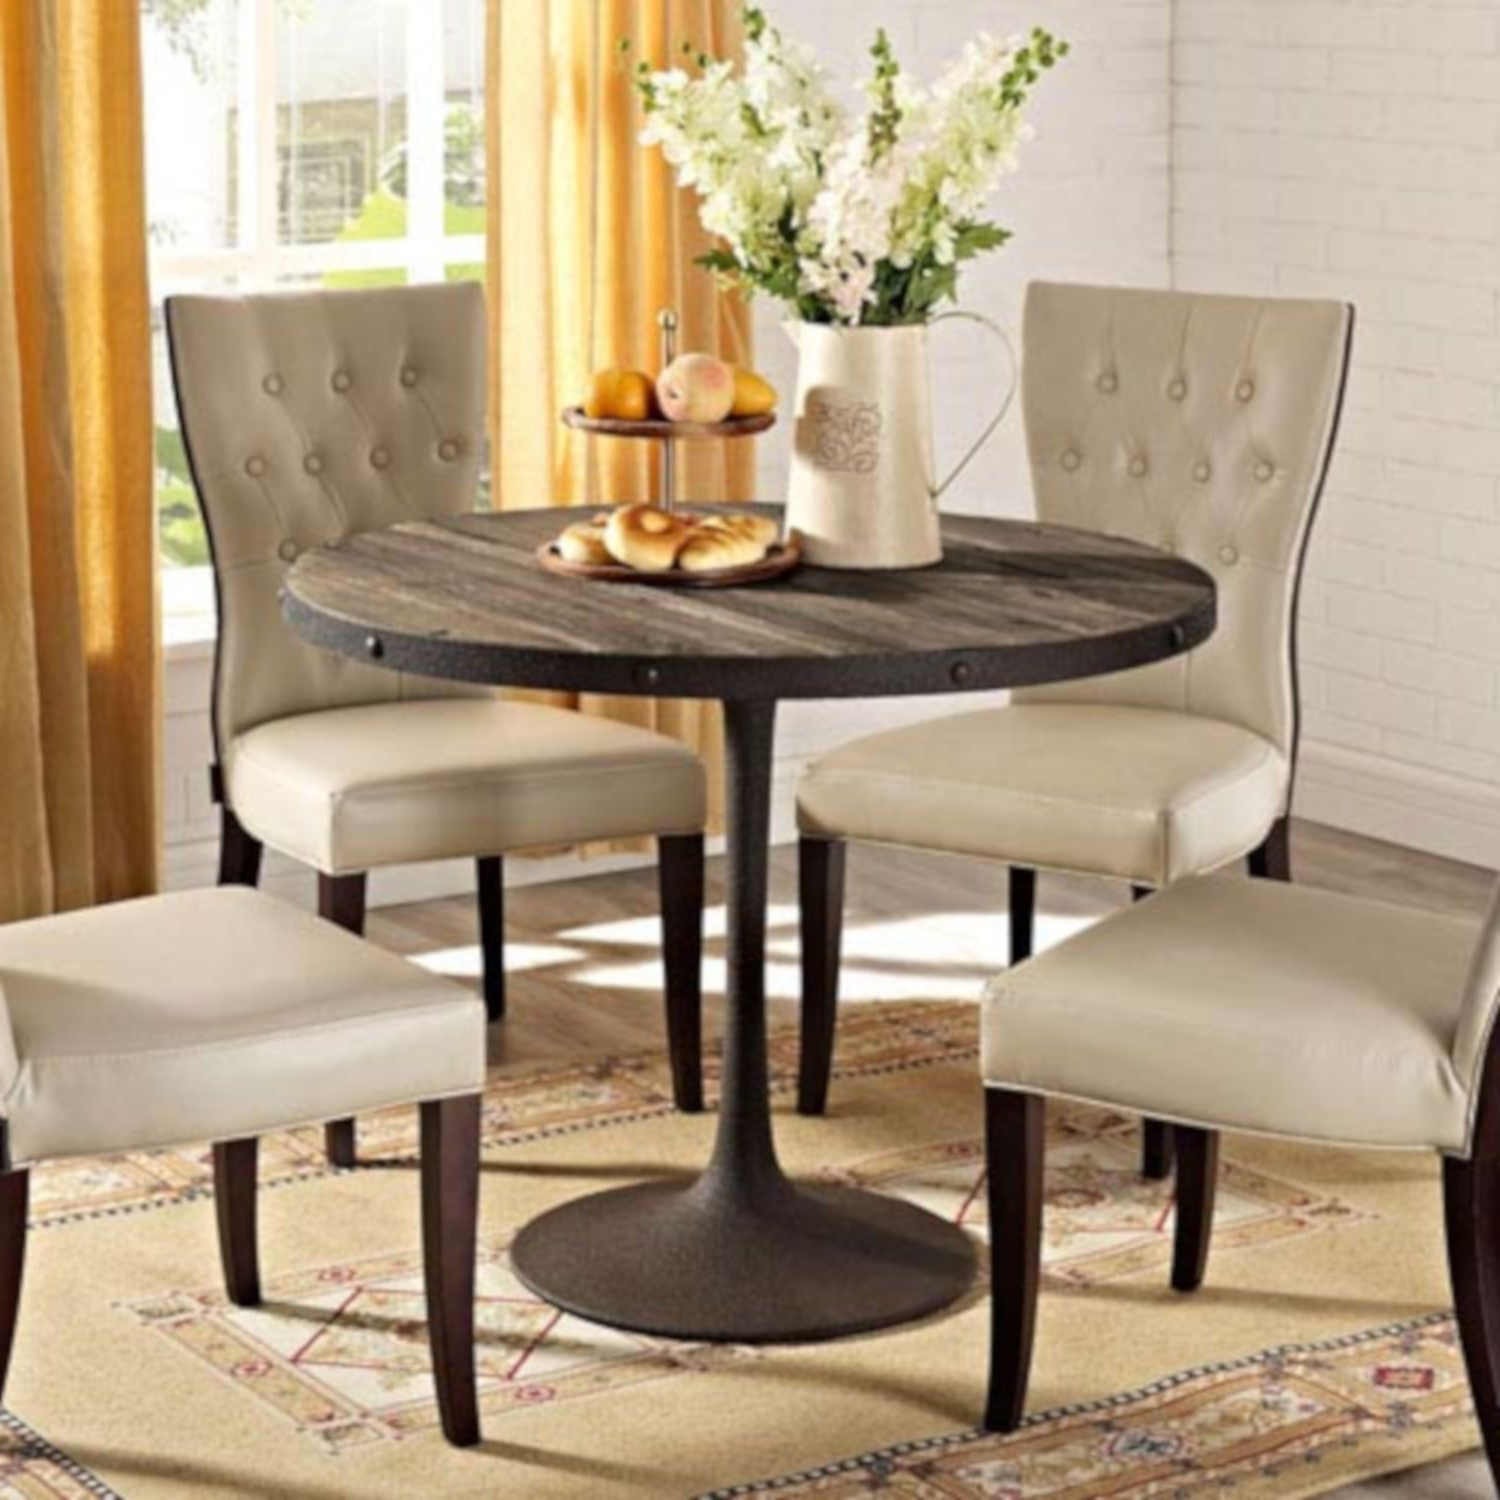 Widely Used 251 First Fulton Brown 40 Inch Pine Wood Top Dining Table In Servin 43'' Pedestal Dining Tables (View 7 of 20)